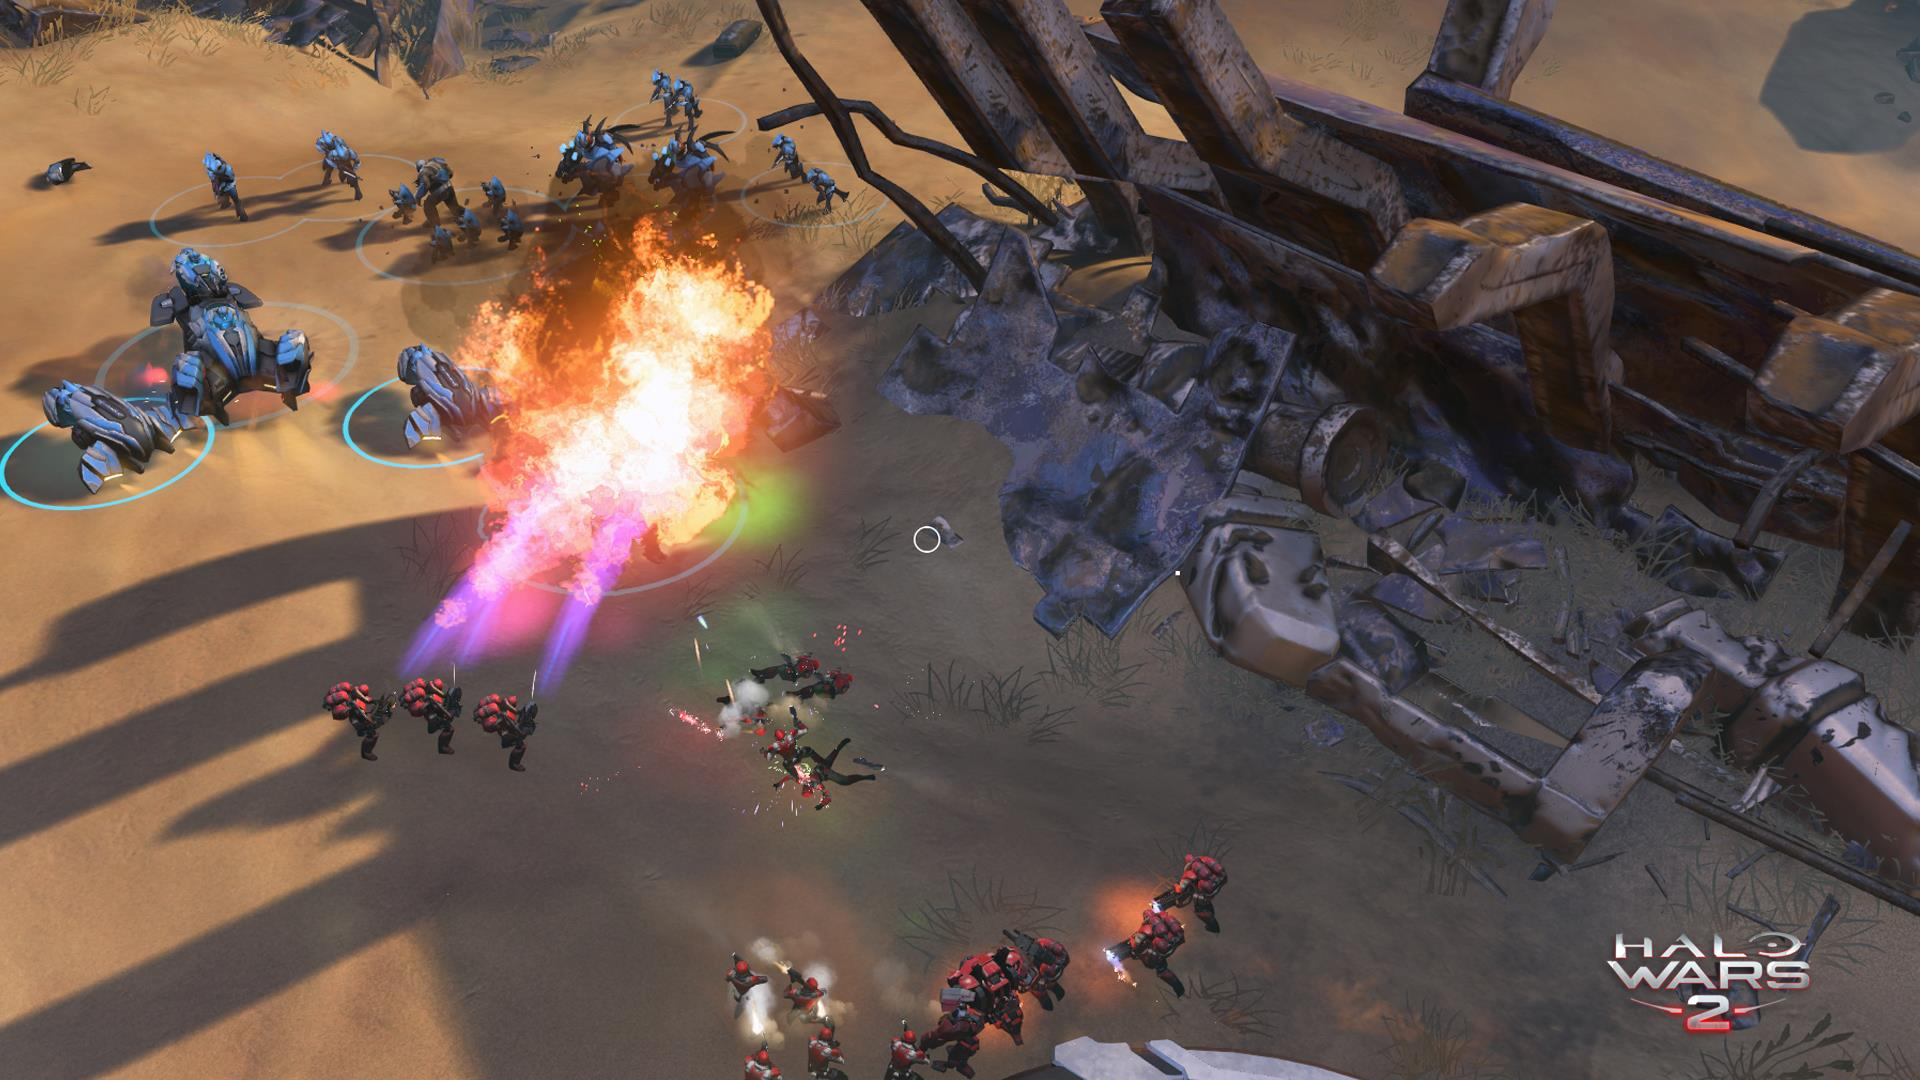 halo_wars_2_e3_gameplay_screen_5